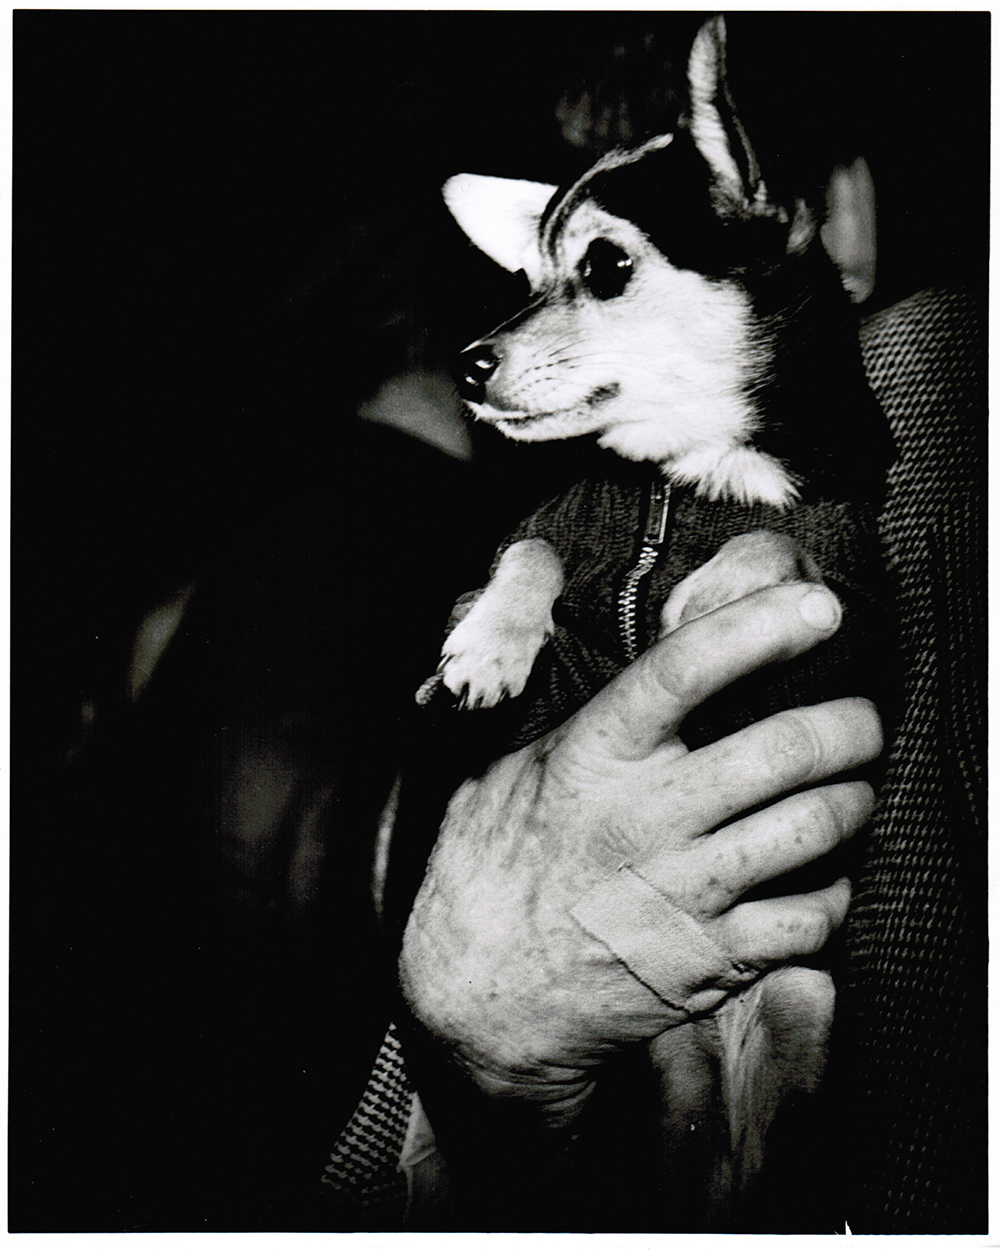 Weegee, Catherine Couturier Gallery, Dog and Bandaged Hand